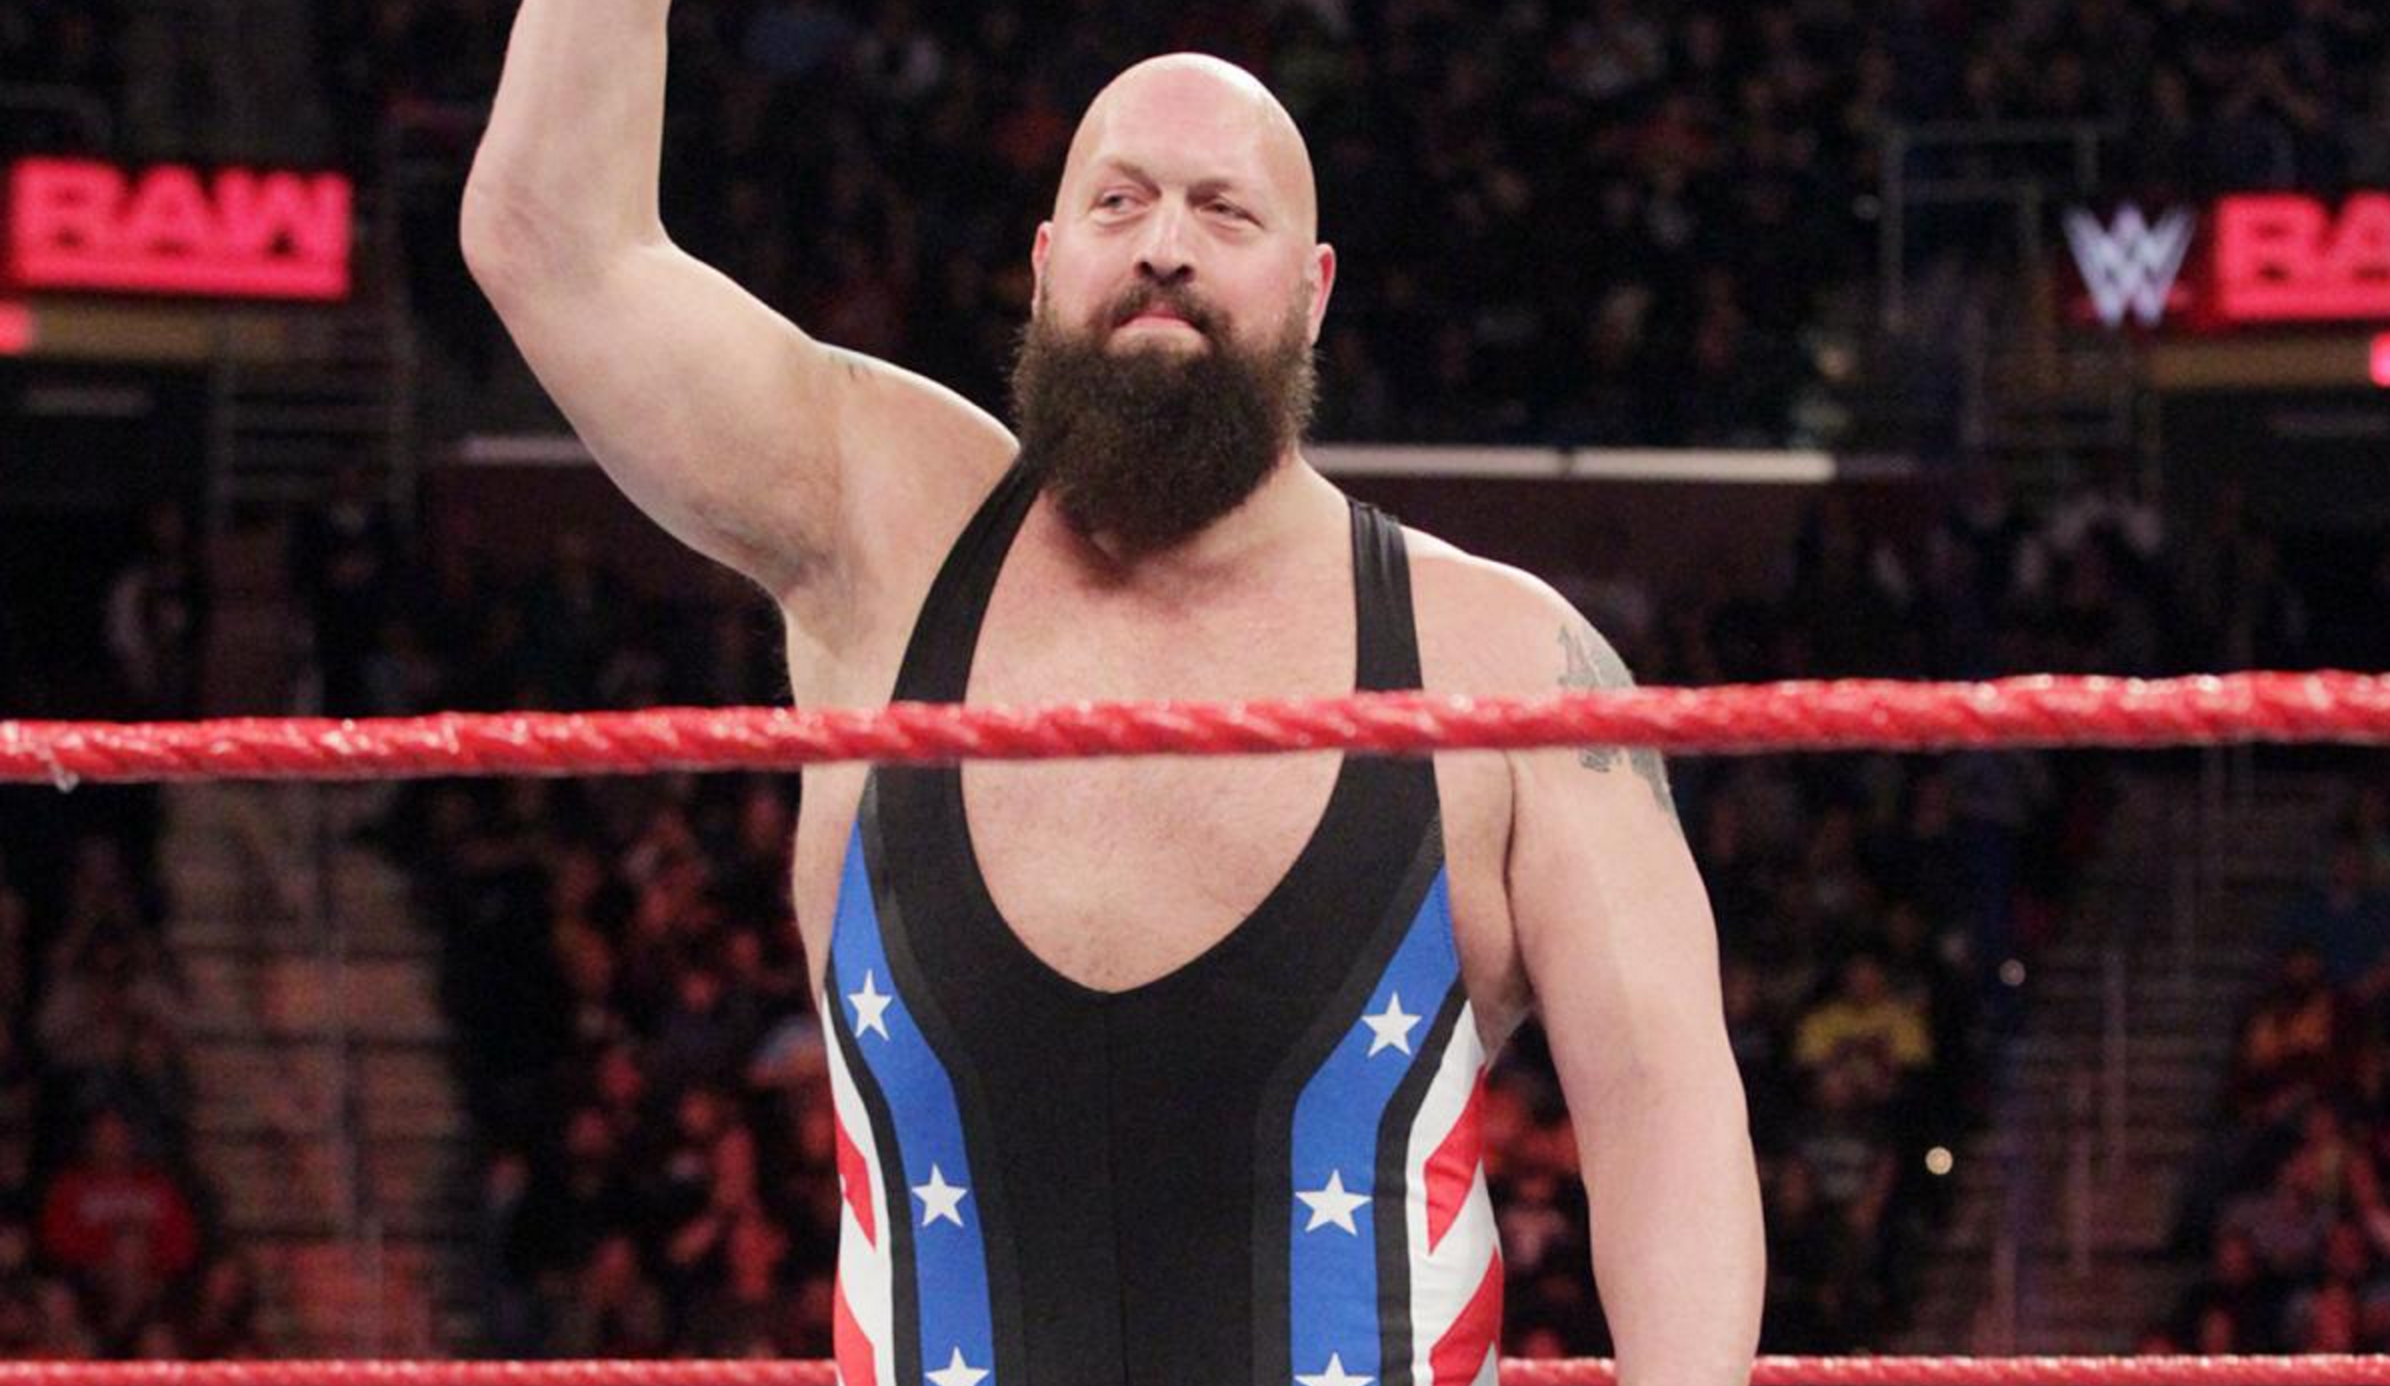 Why Big Show Signing With AEW Leaving WWE May Not Be A Wise Move 2